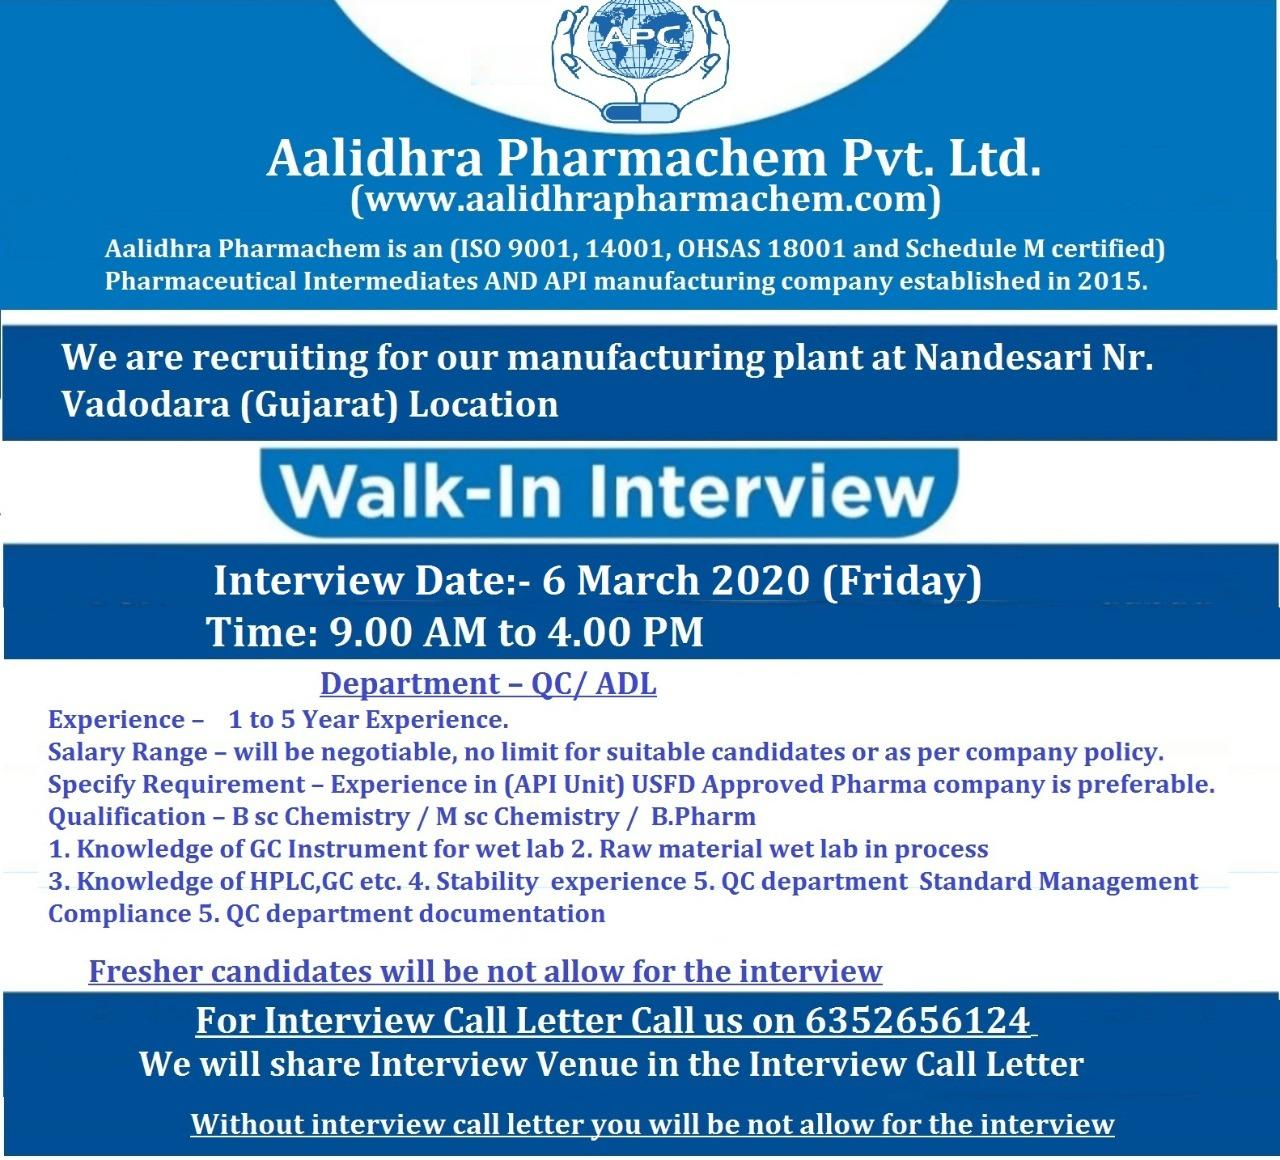 Aalidhra Pharmachem Pvt. Ltd - Walk-In Interview for Production / QC / ADL on 5th & 6th Mar' 2020